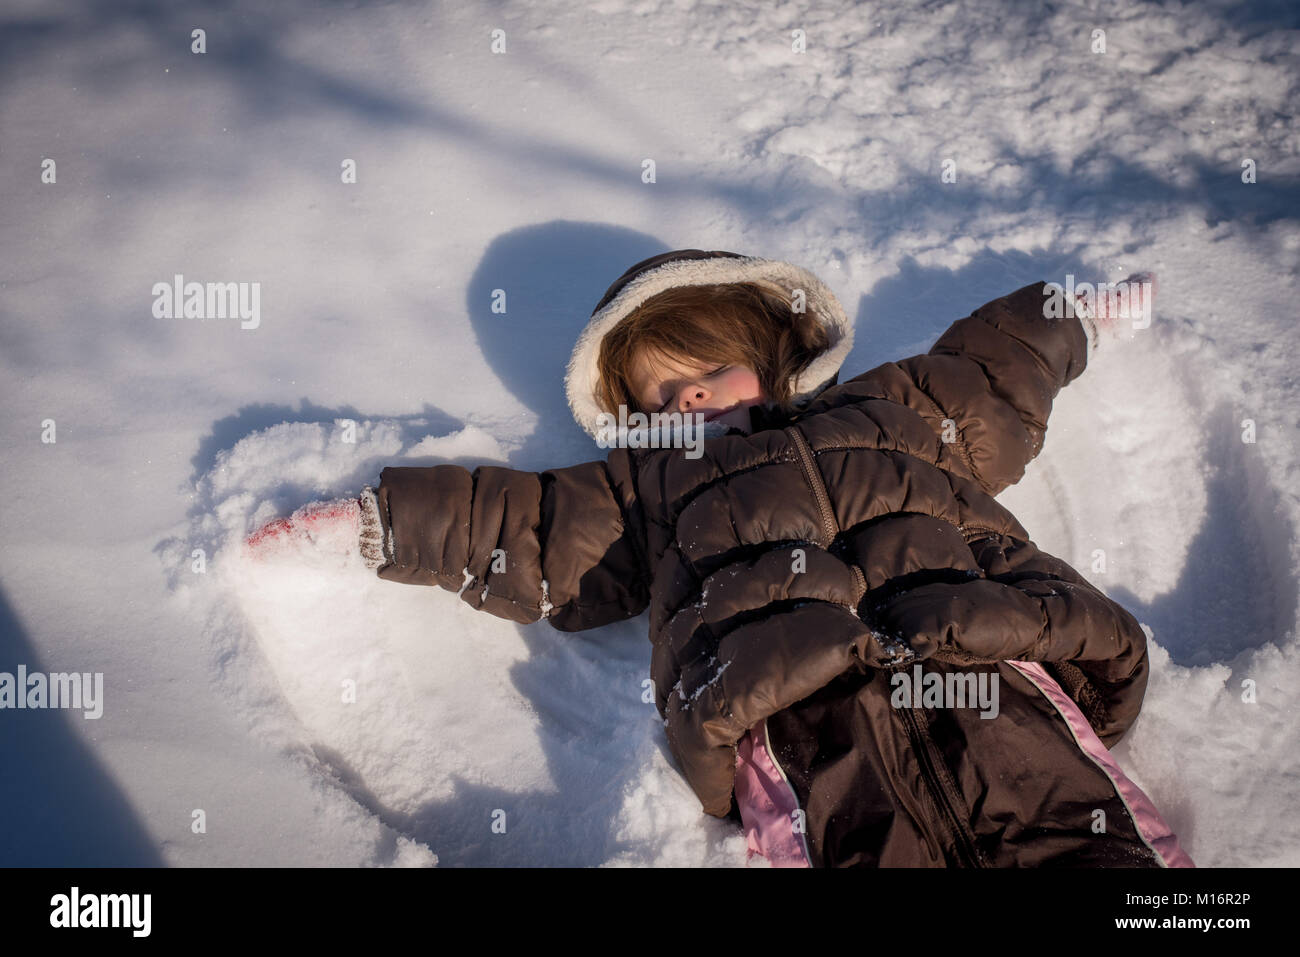 A three-year old girl makes a snow angel in the snow in northeast United States. - Stock Image